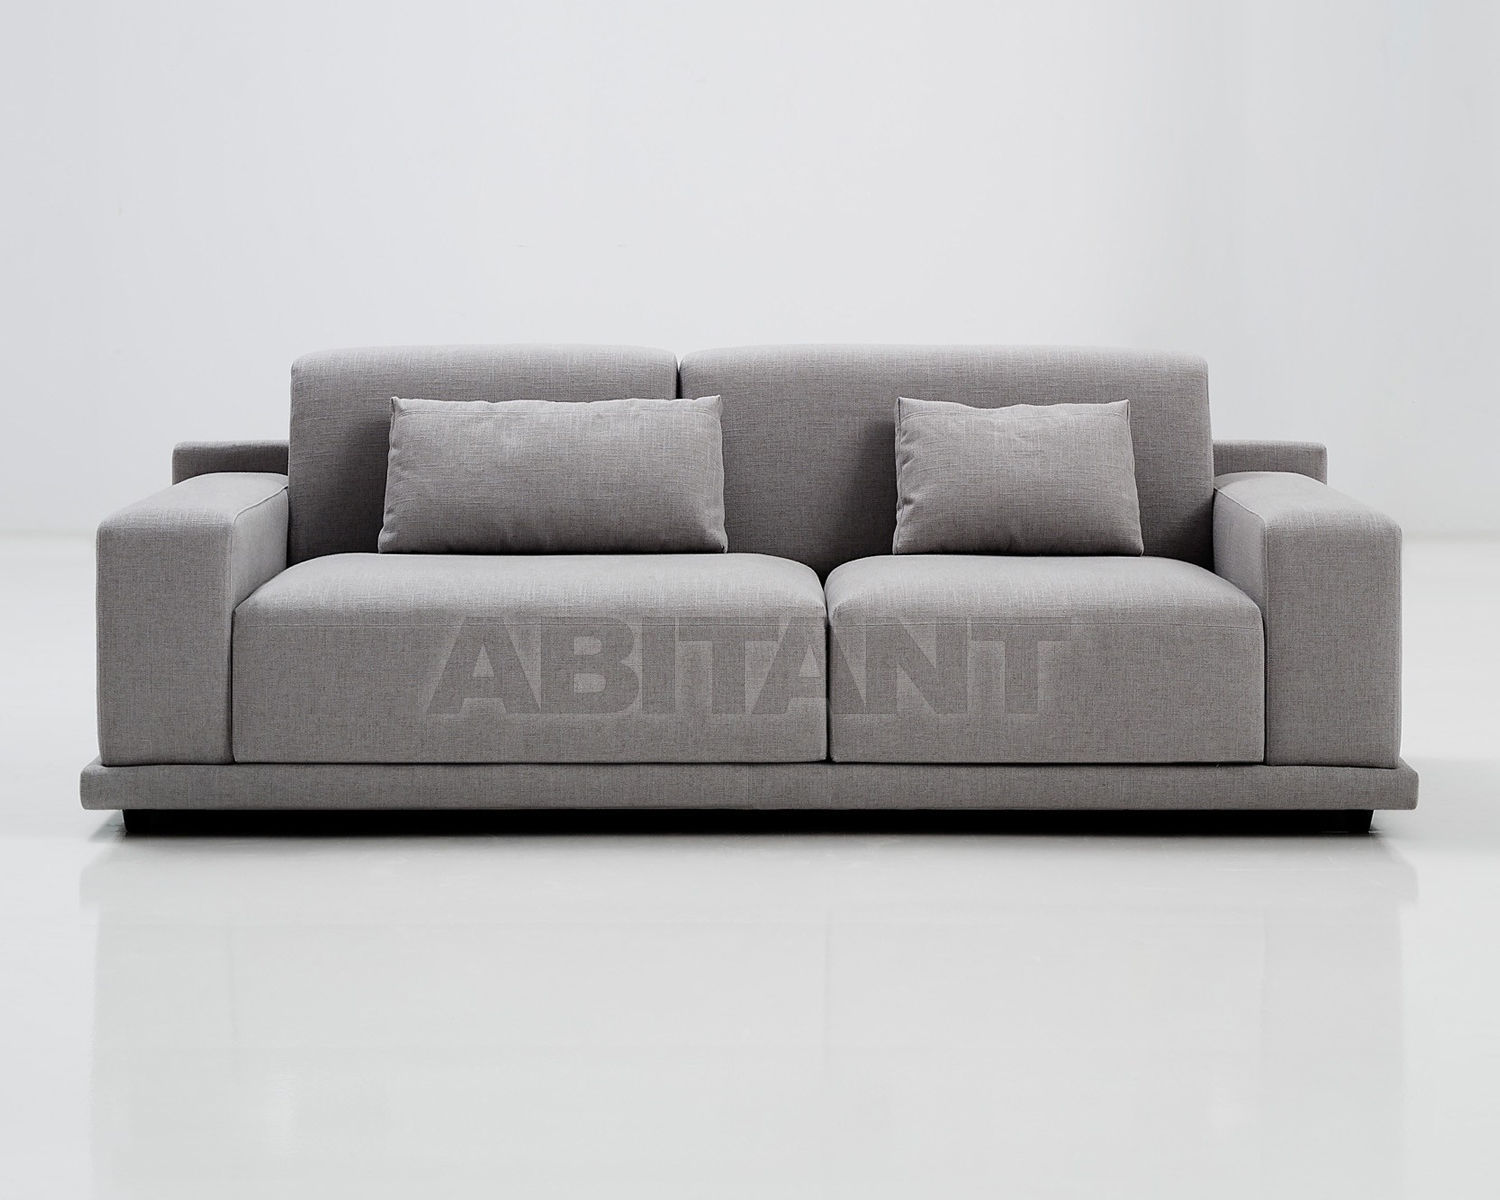 Купить Диван Happen Sancal Diseno, S.L. Sofa 256.11.Z2J.1